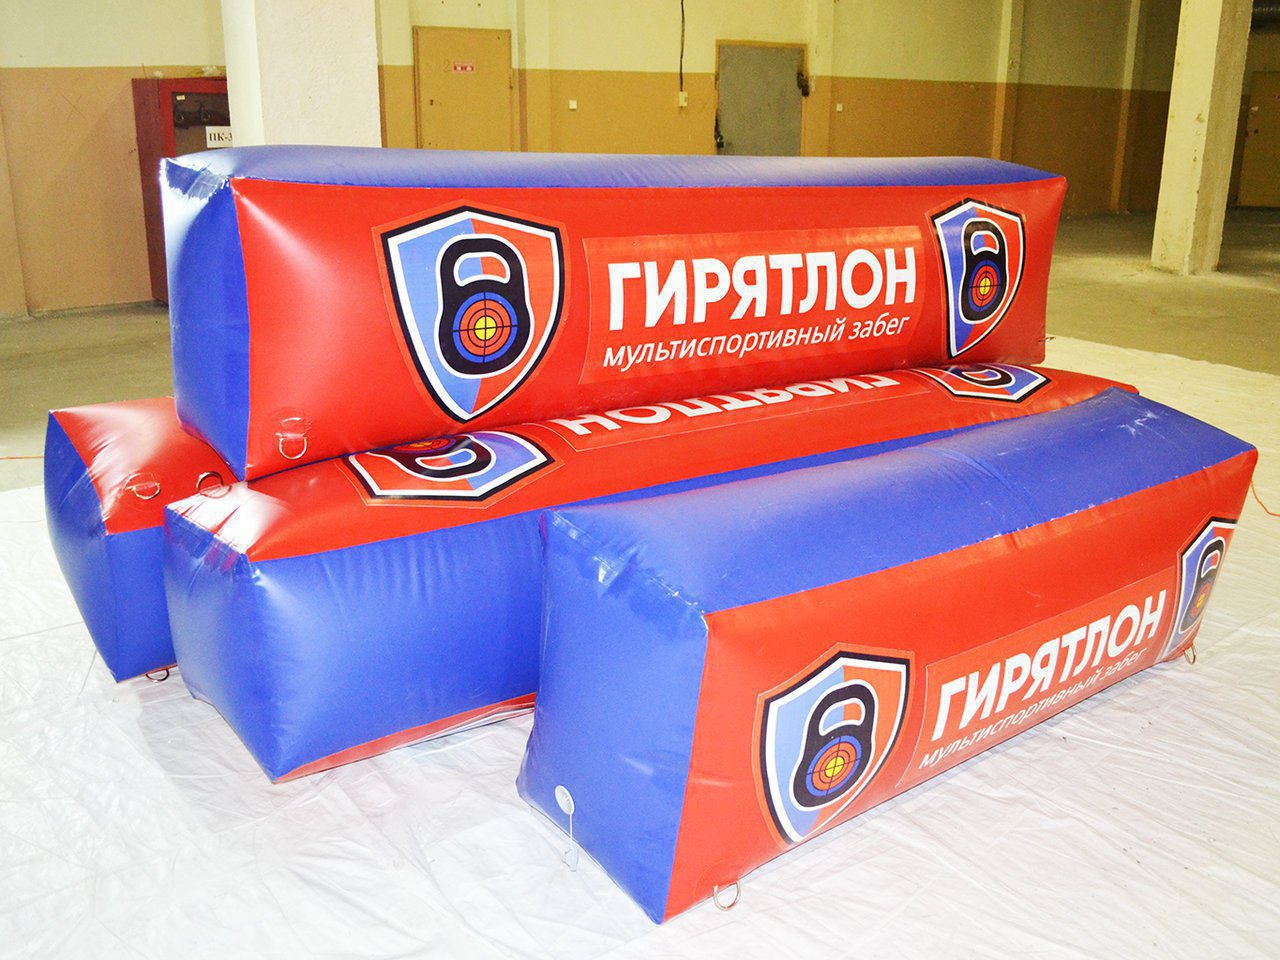 A set of paintball players branded gyryatlon